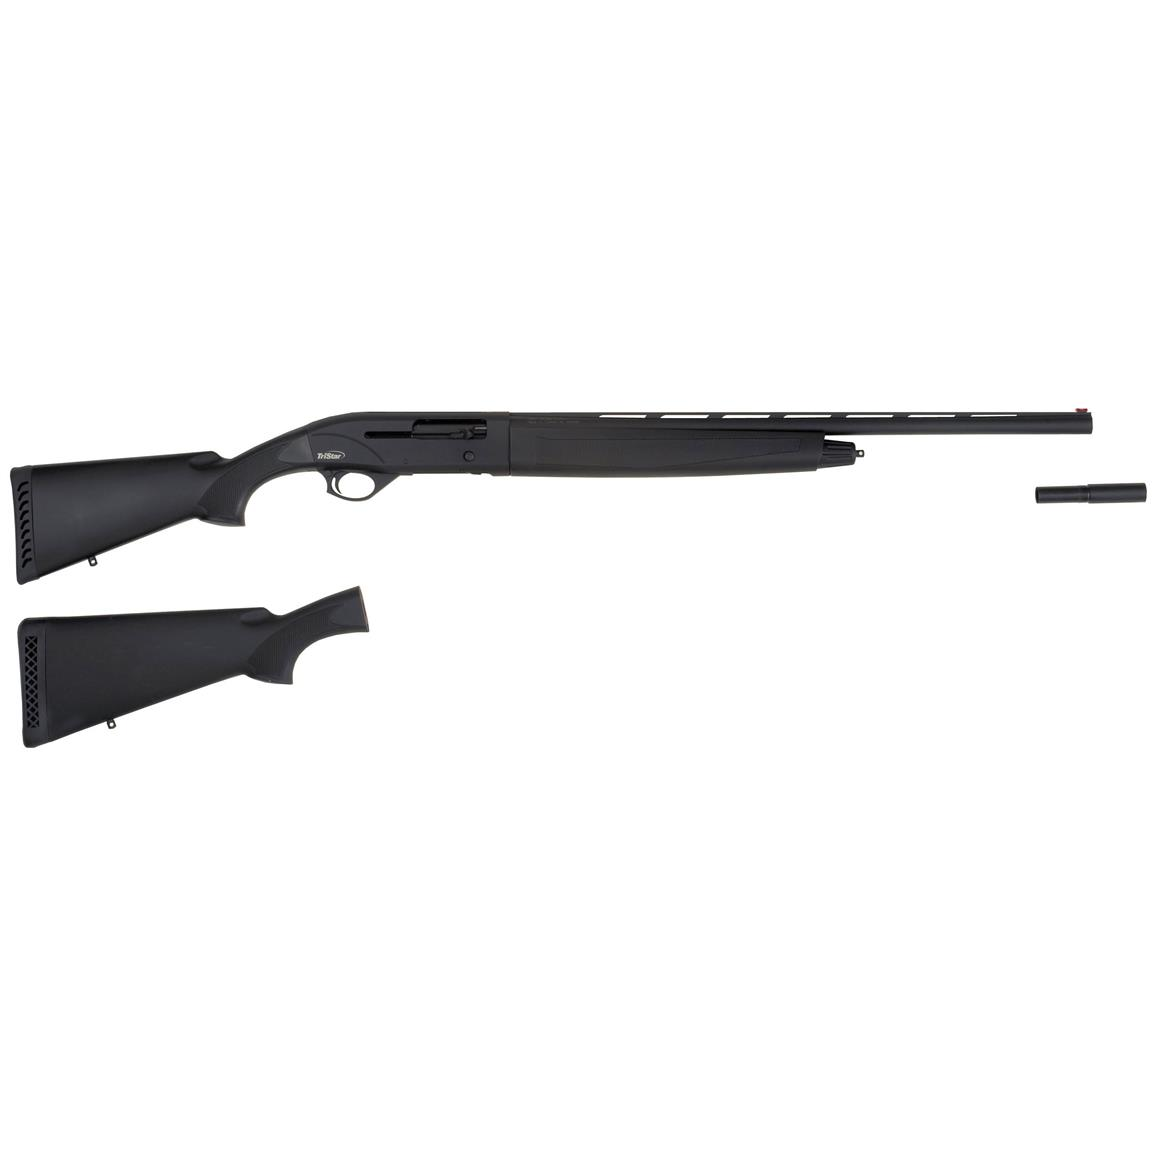 Youth / Adult TriStar Viper G2 Combo, Semi-automatic, 20 Gauge, 24130, 713780241302, 24 inch Barrel